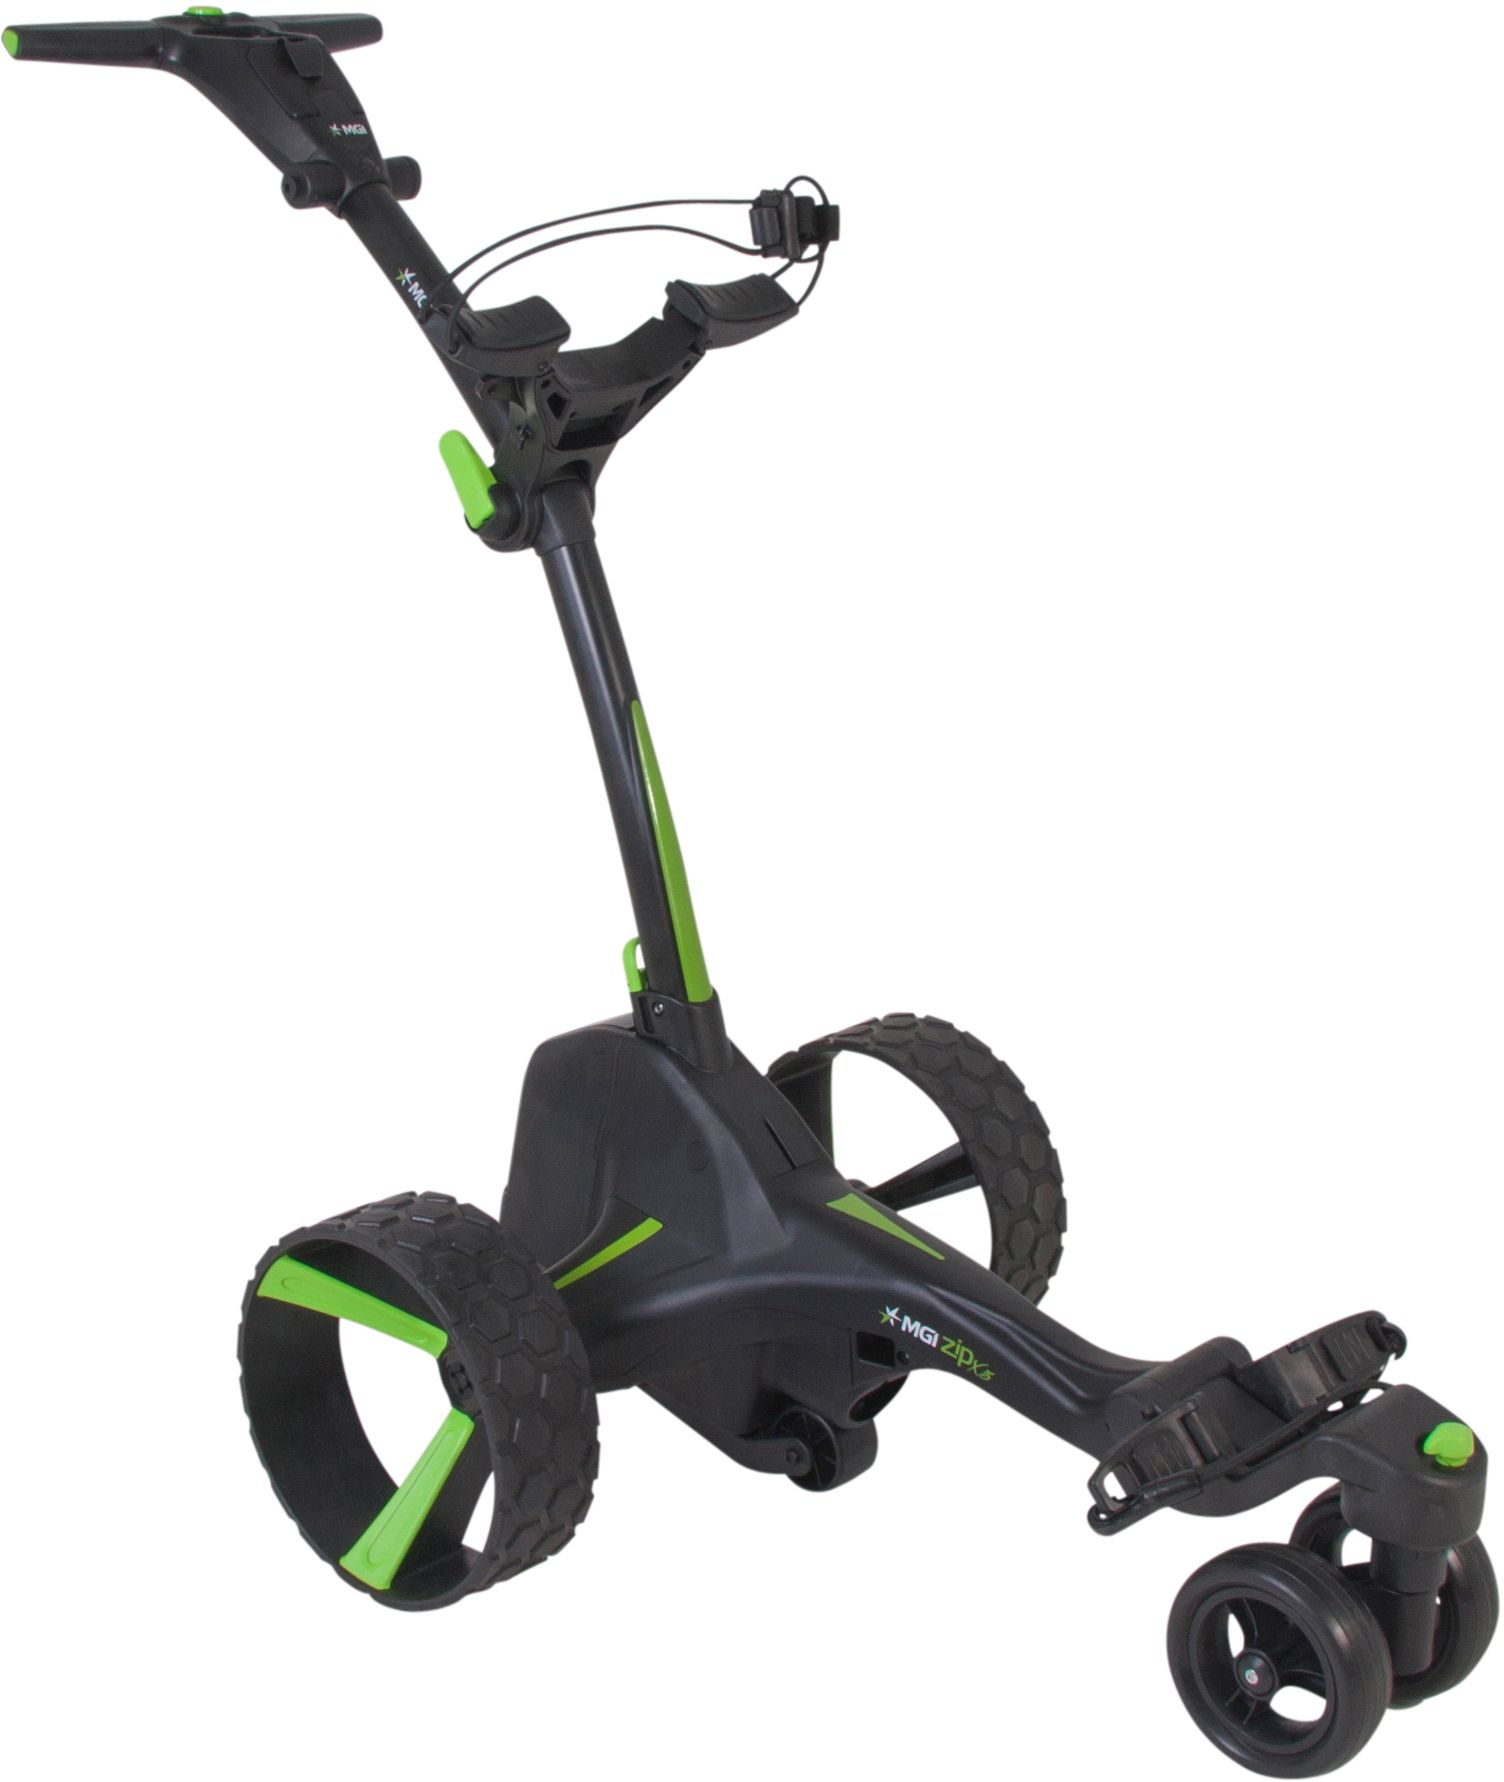 Push Golf Carts - MGI Zip X5